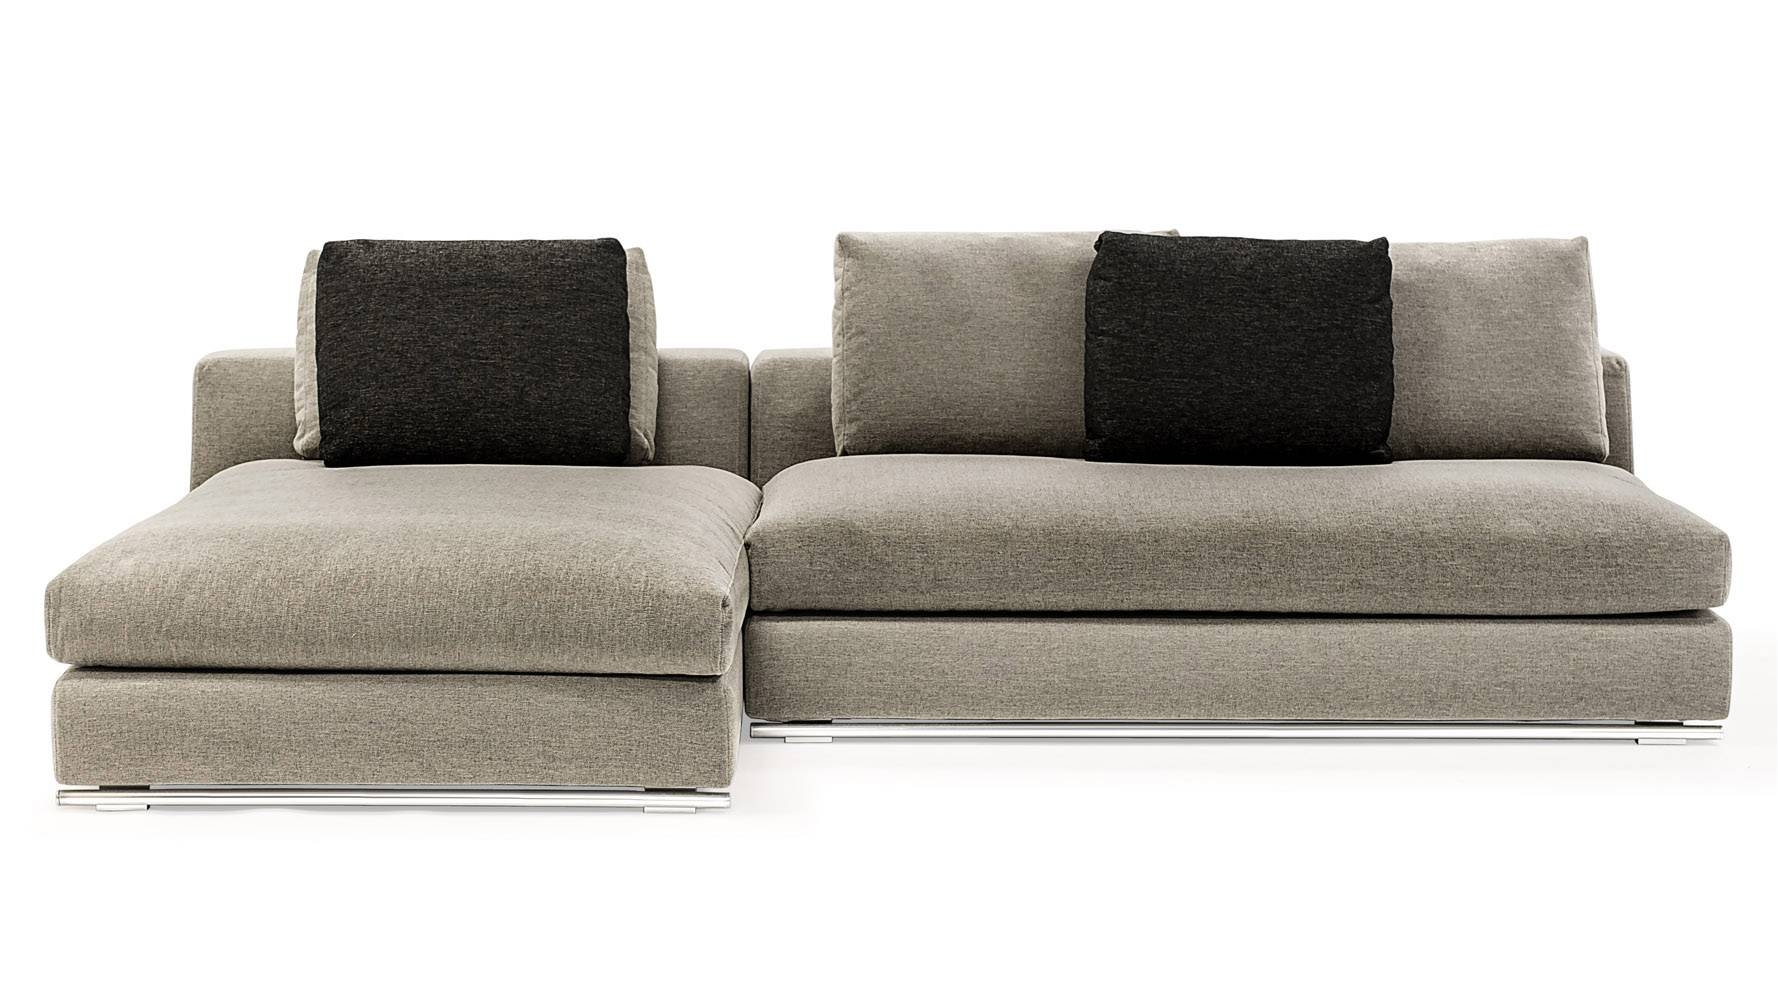 Comodo Sectional Sofa With Ottoman - Grey | Zuri Furniture within Armless Sectional Sofa (Image 11 of 30)